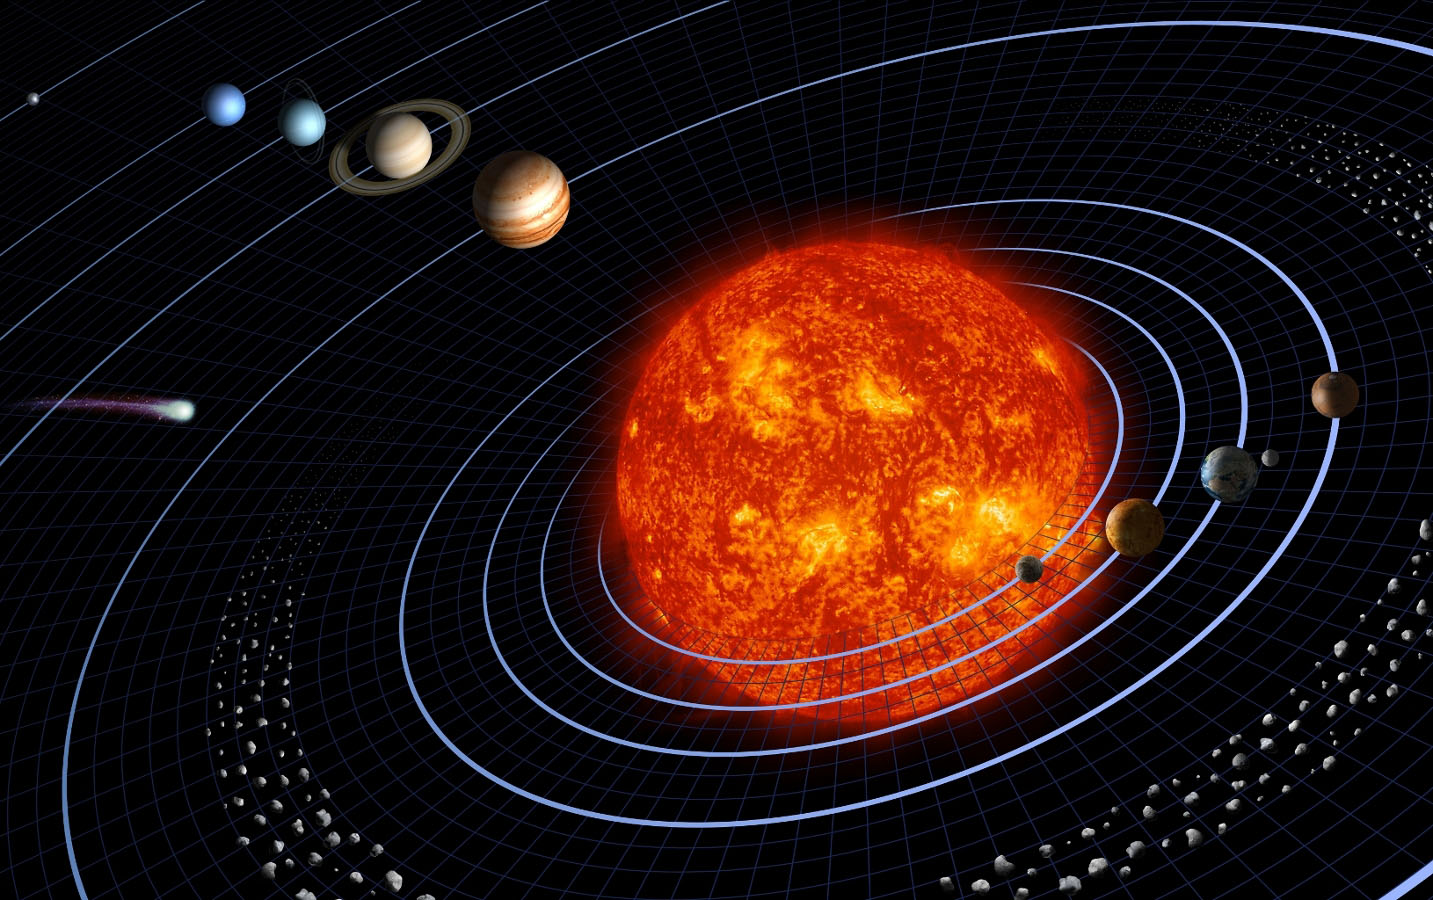 wiring diagram off grid solar system lion skeleton planet schematic space images our features eight planets power